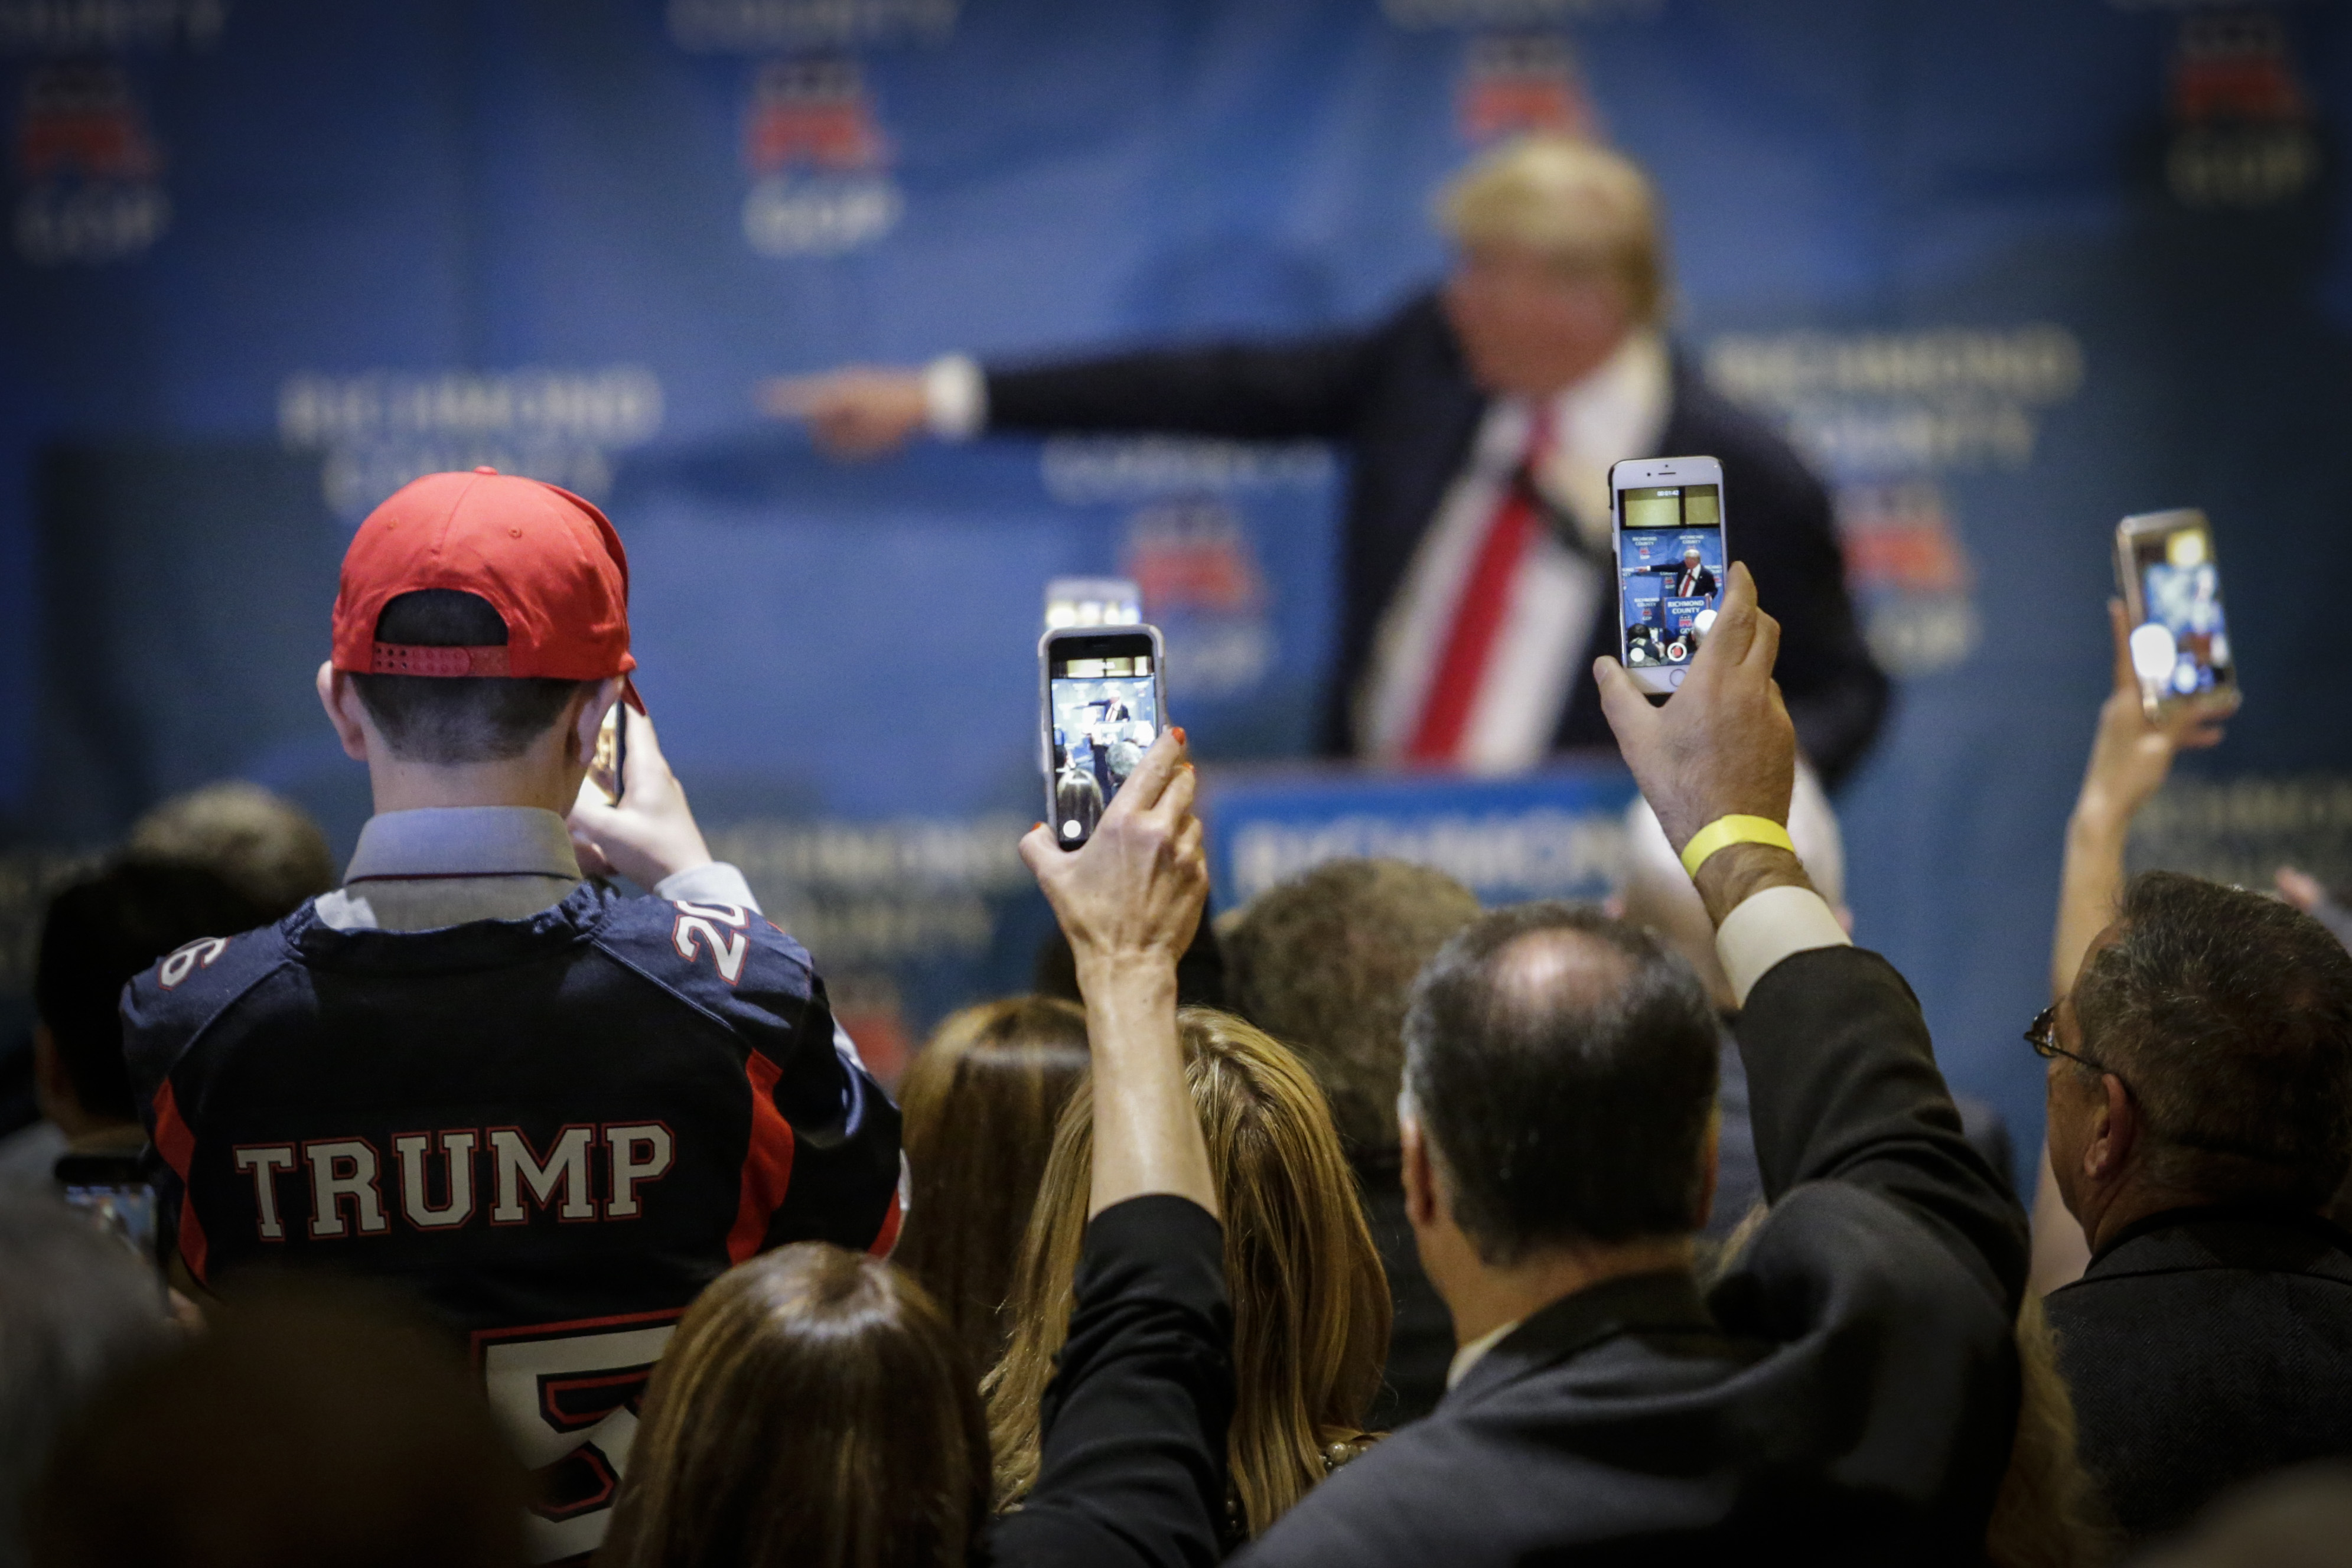 Republican presidential candidate Donald Trump speaks during the Republican Party's annual Lincoln Day Brunch in Staten Island, New York.